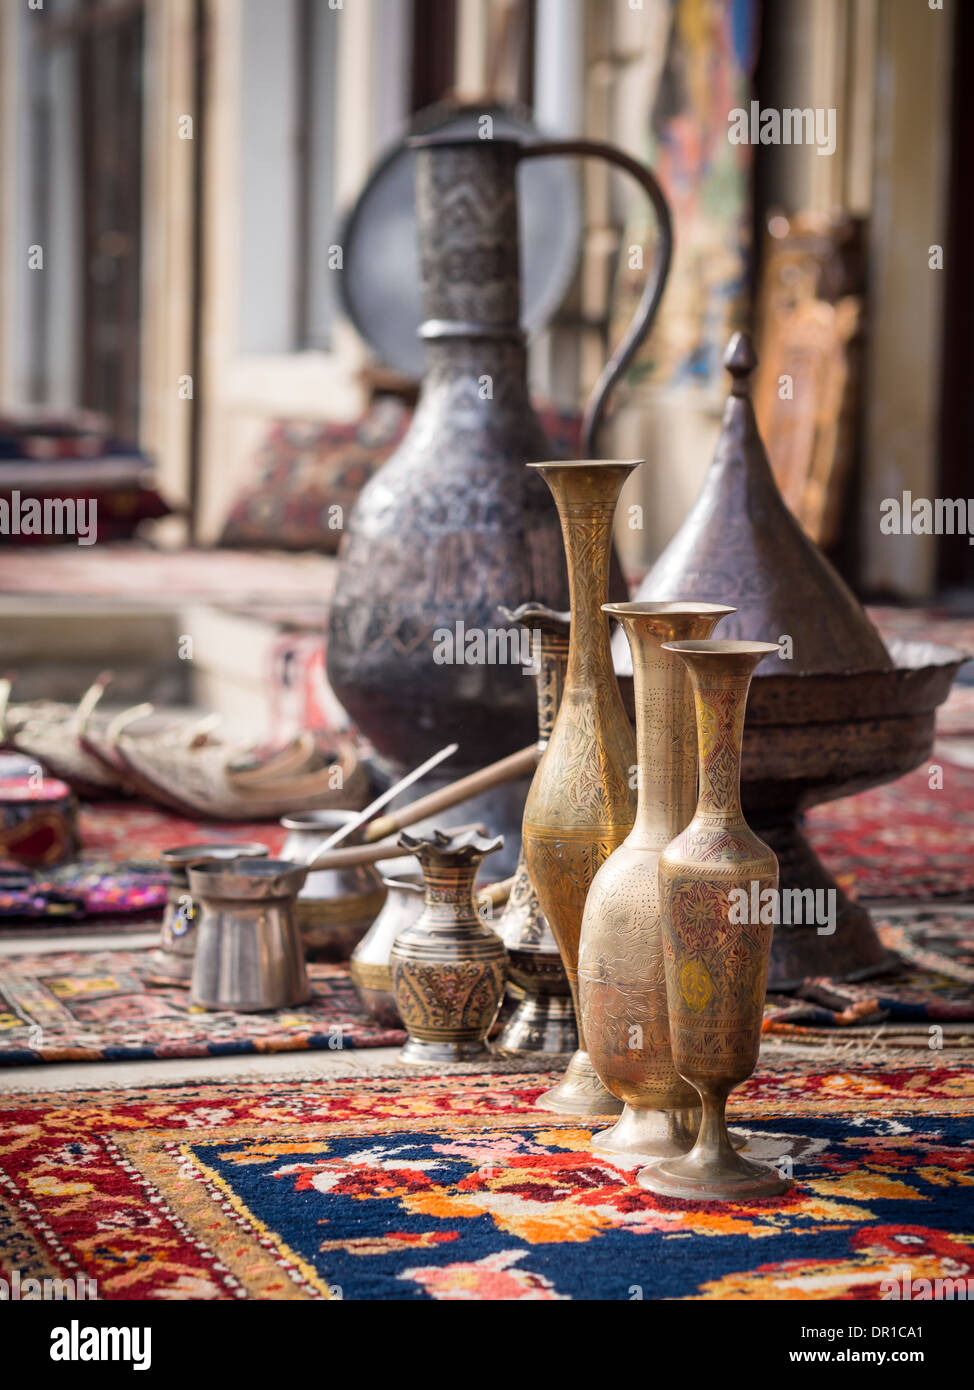 Metal containers and other souvenirs sold on a local market in the old town of Baku, Azerbaijan. - Stock Image